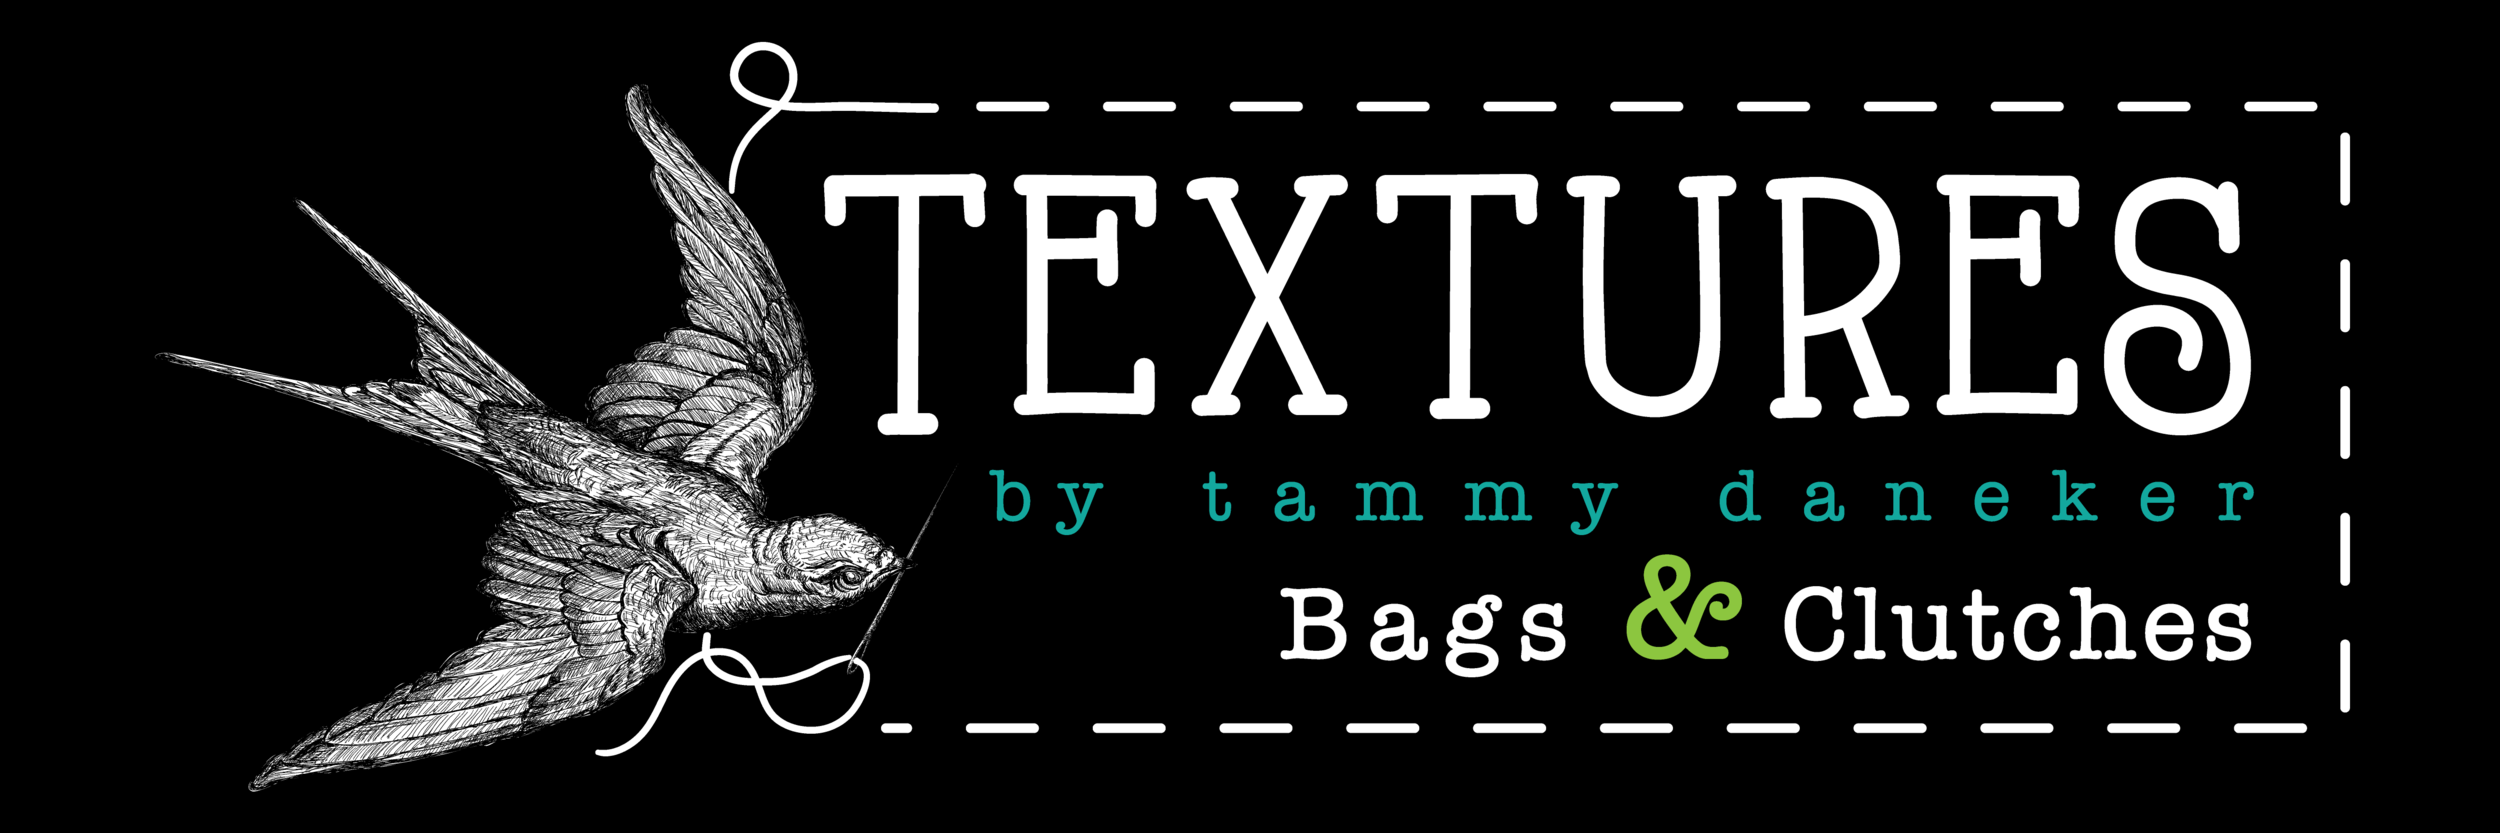 Textures Bags & Clutches